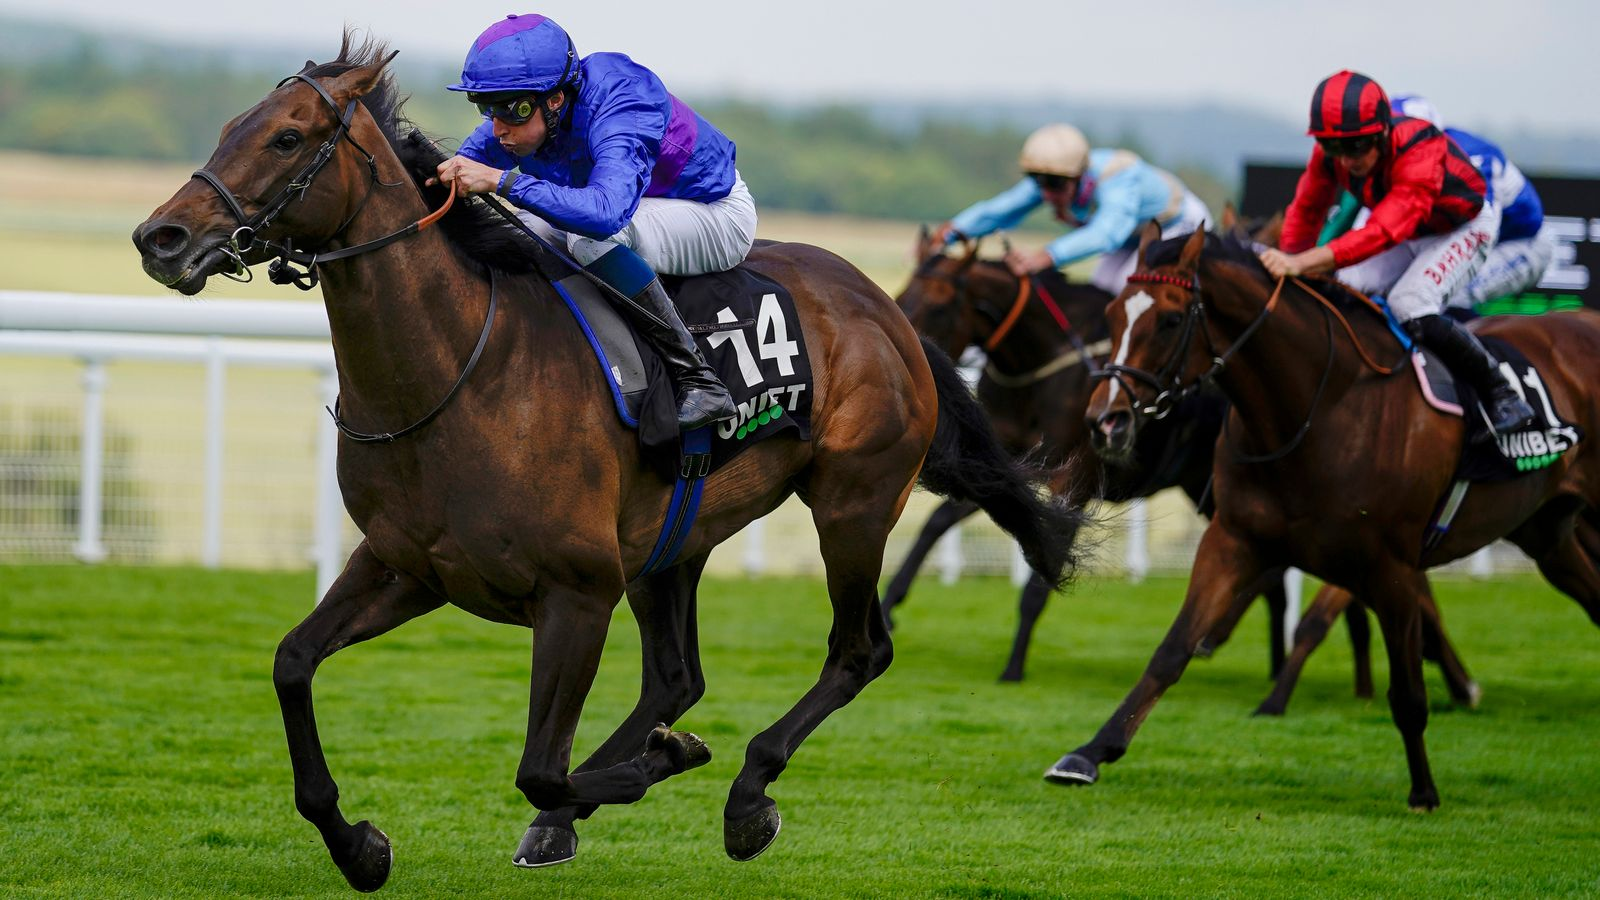 Migration bids for Foundation glory at Goodwood